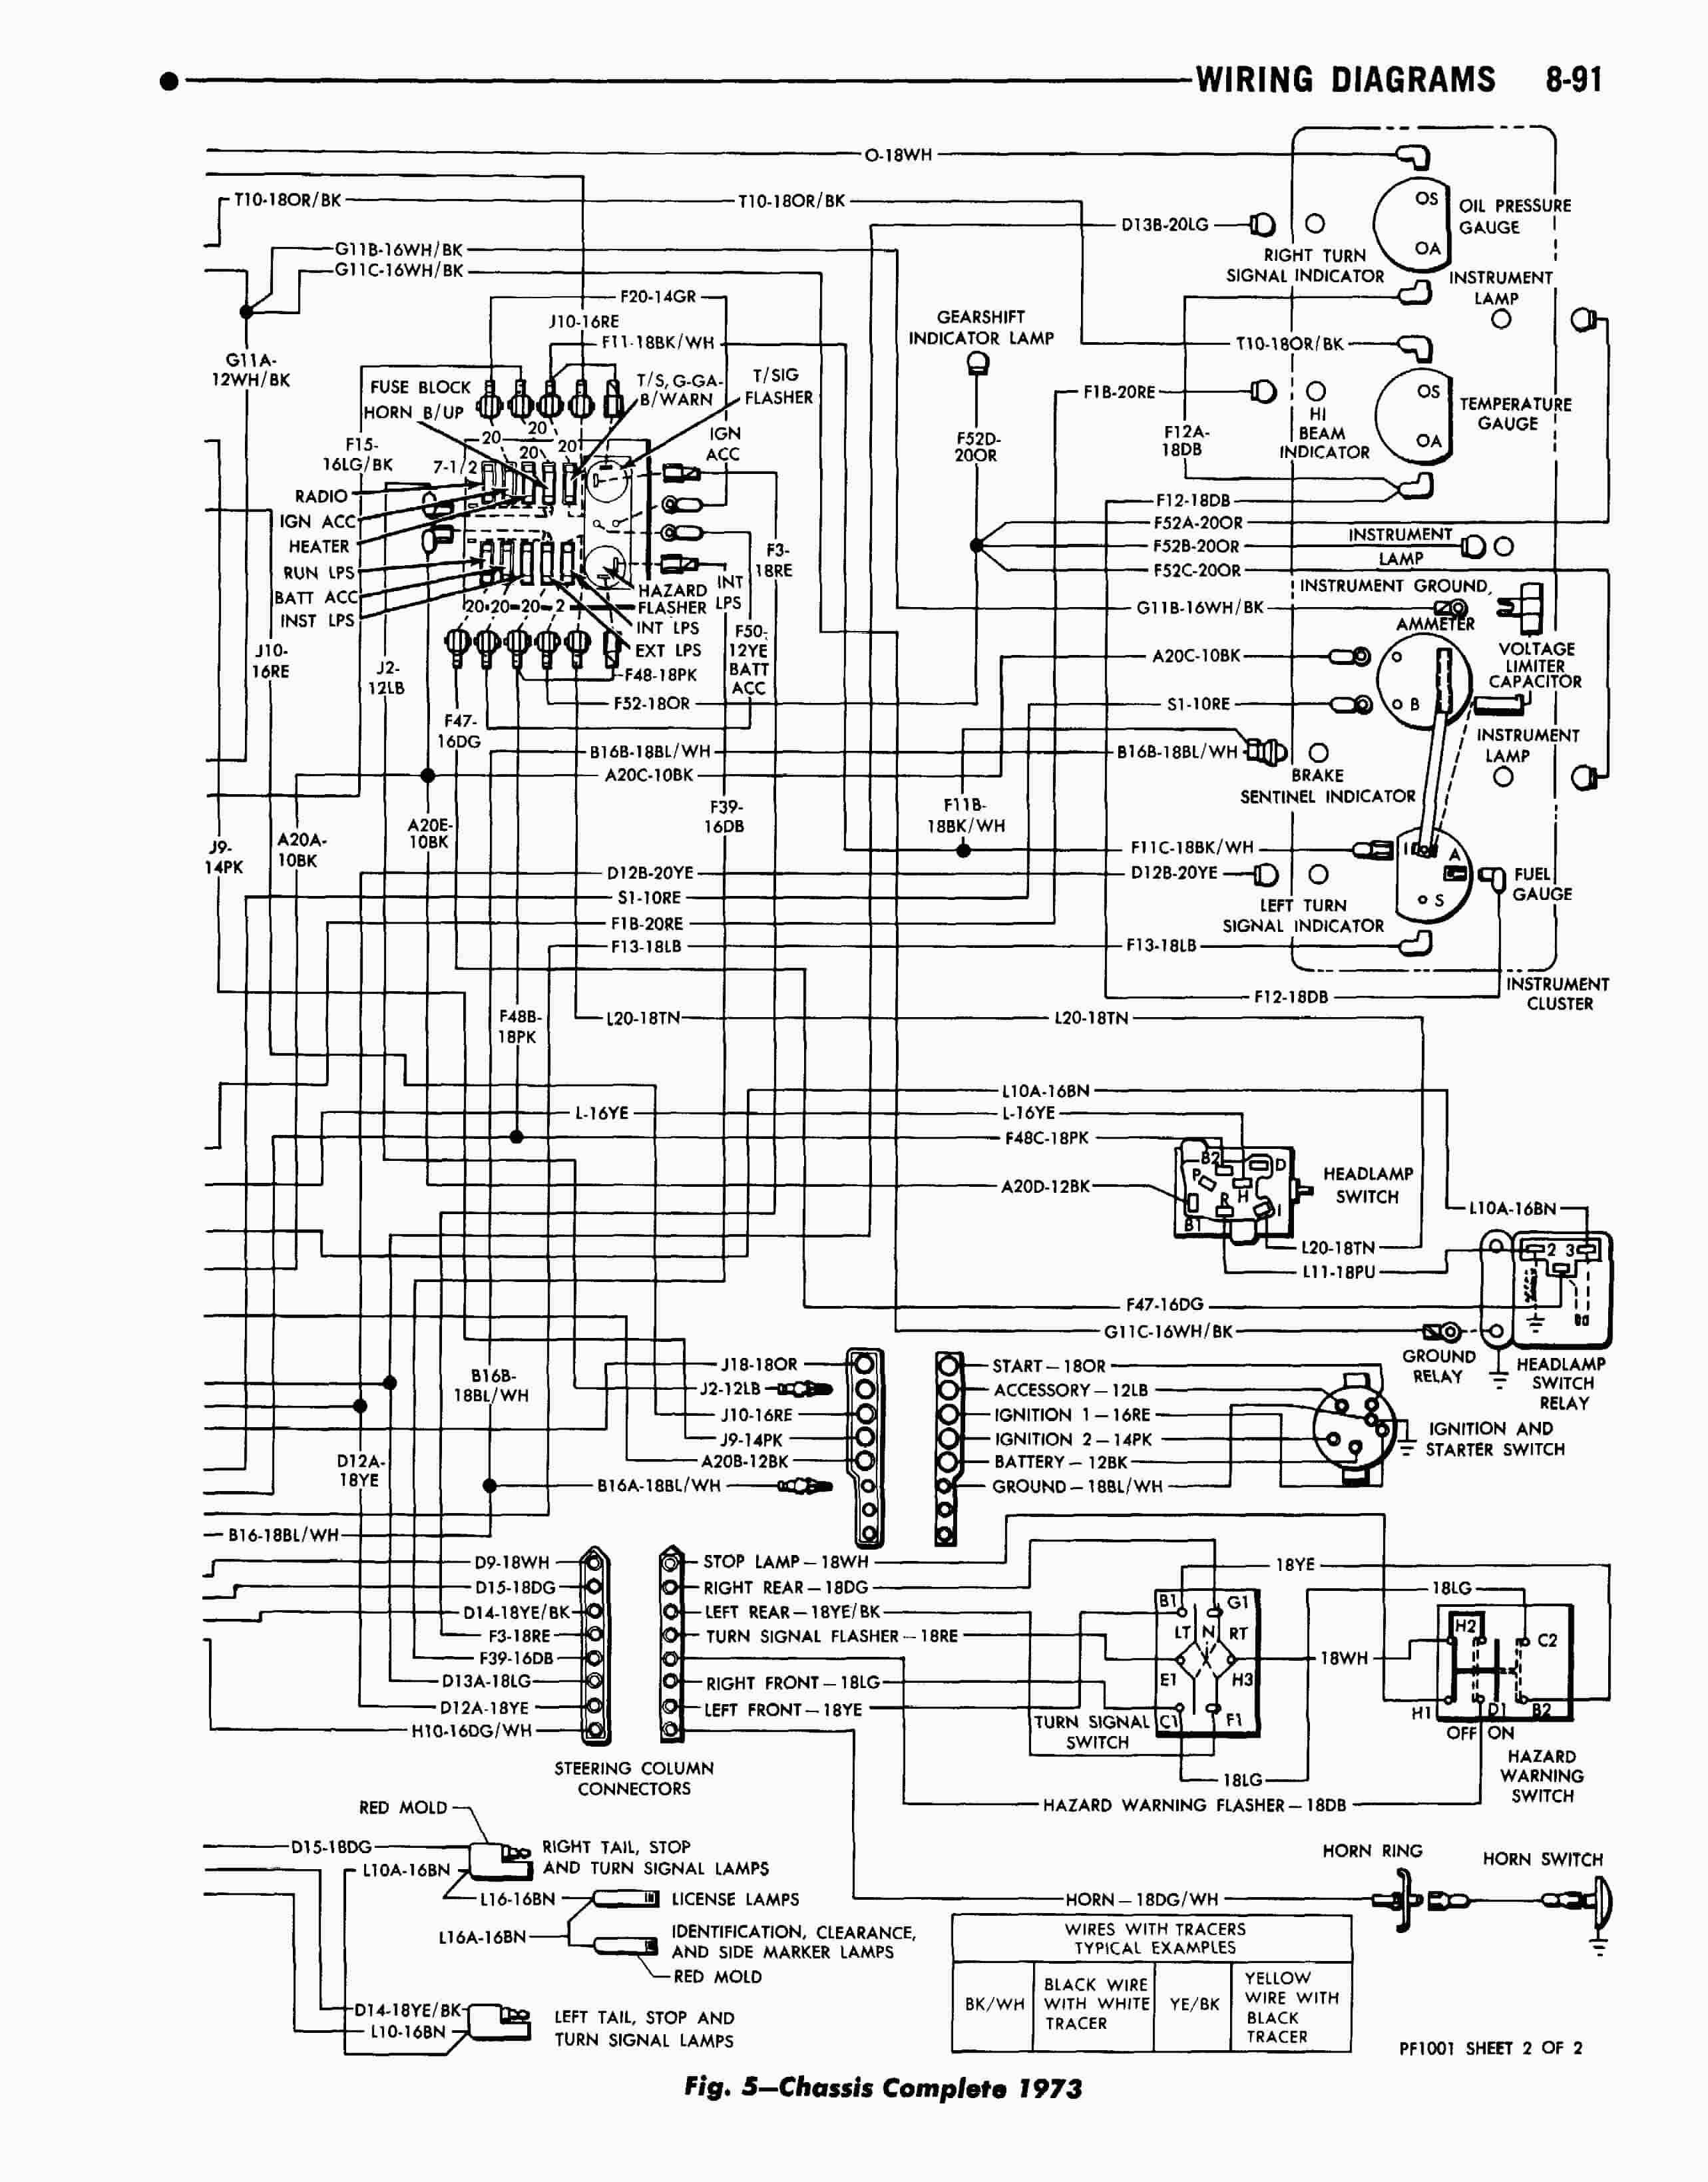 Ford F53 Wiring   Wiring Diagram - Ford F53 Motorhome Chassis Wiring Diagram